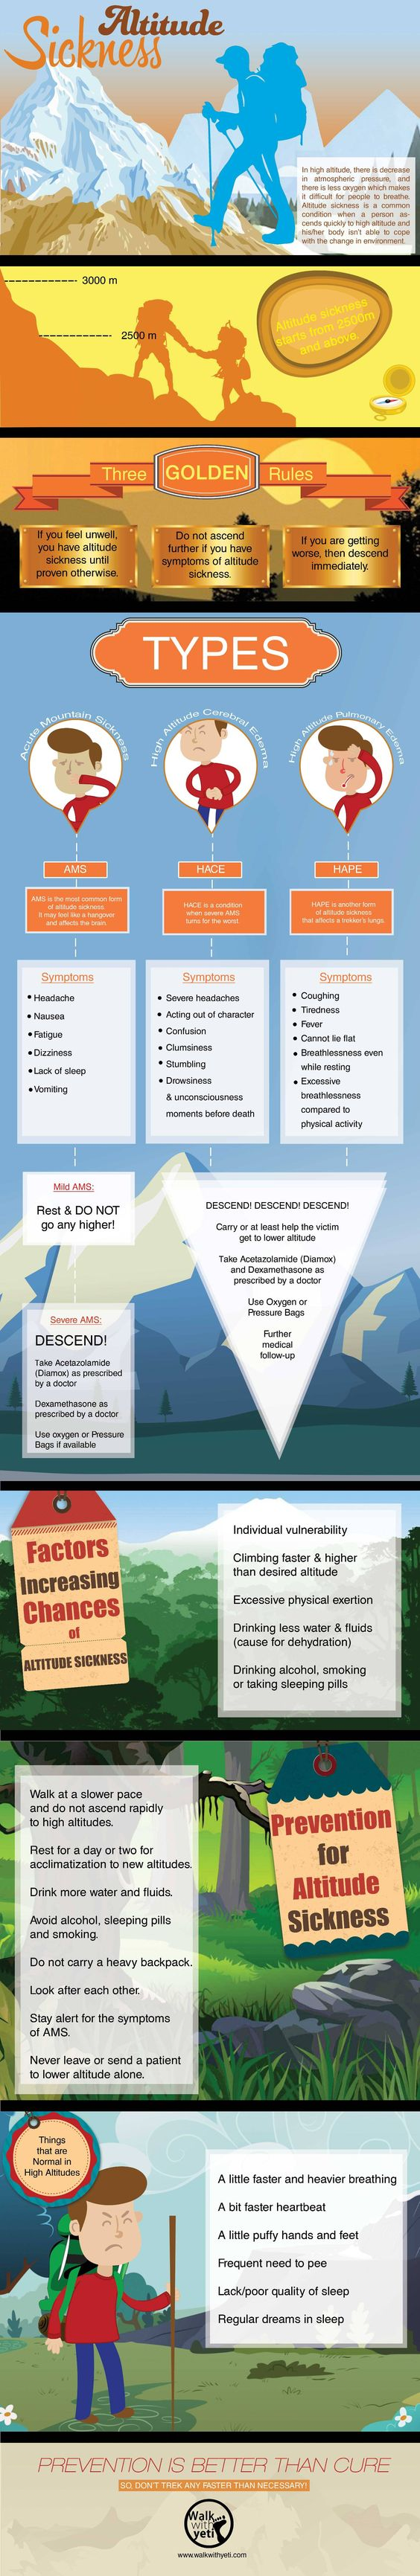 Infographic on Altitude Sickness - While trekking people have to be aware of altitude sickness. This altitude sickness infographic helps you to learn about its types, symptoms & treatments.